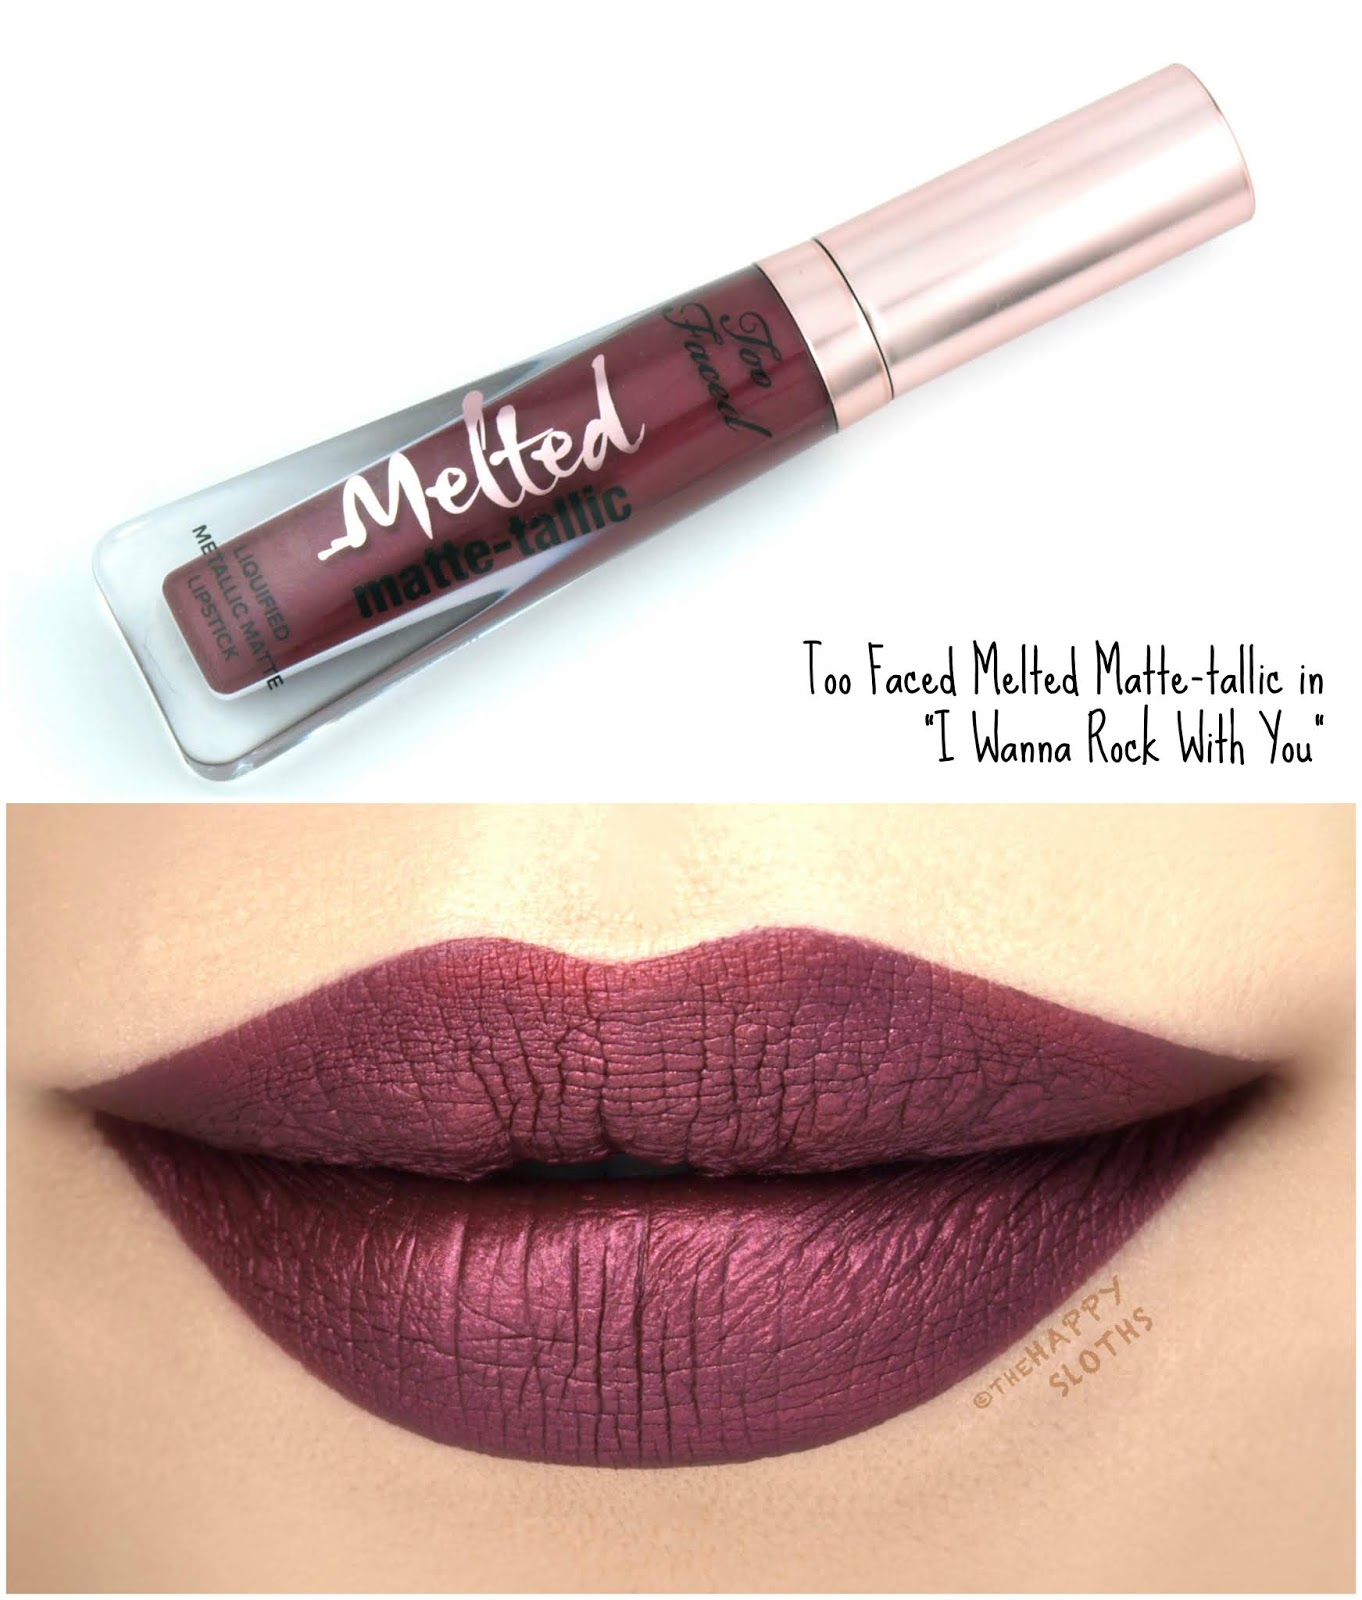 "Too Faced | Melted Matte-tallic in ""I Wanna Rock With You"": Review and Swatches"